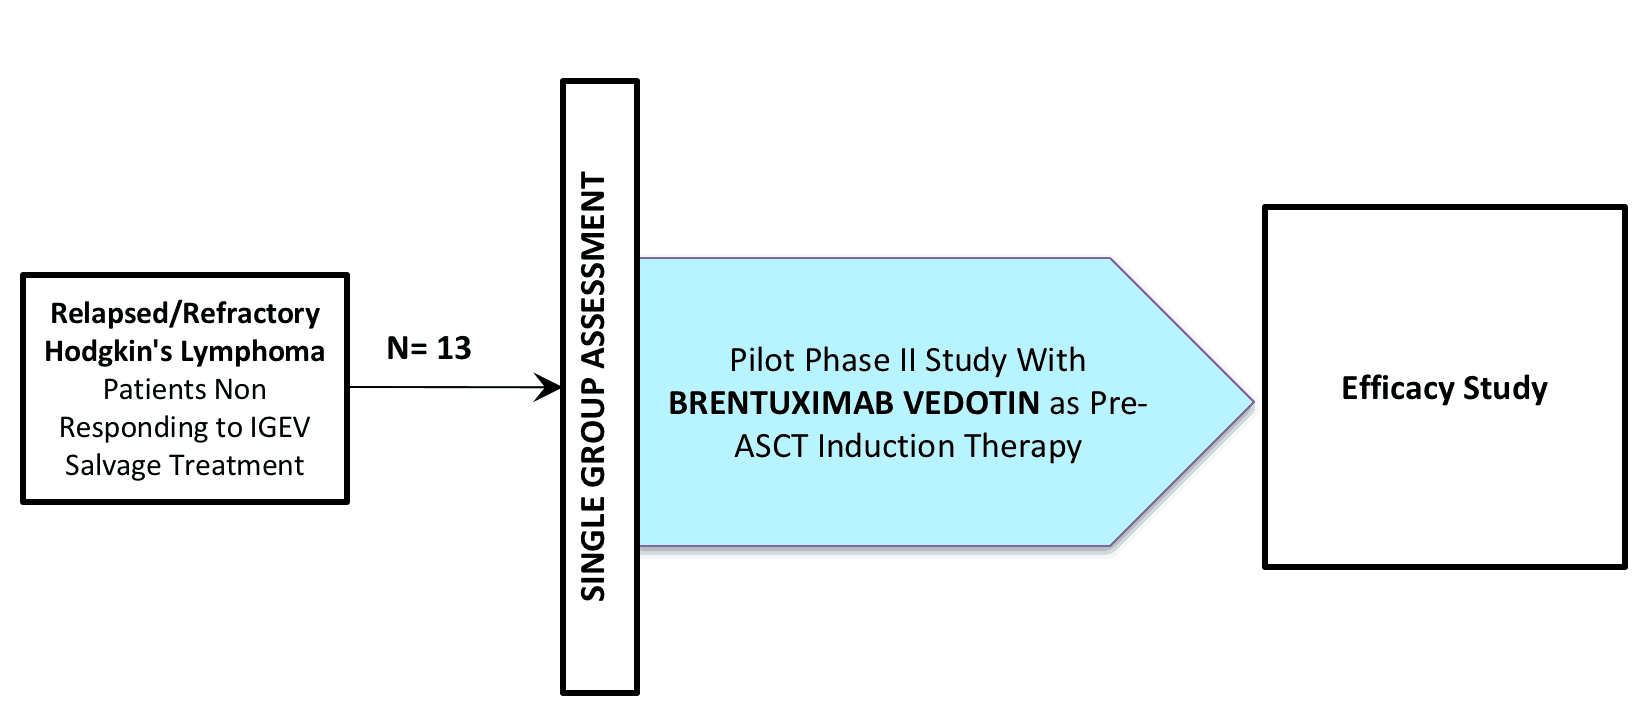 NCT02244021 (CLINICAL TRIAL / BRENTUXIMAB VEDOTIN / SGN-035 / ADCETRIS®)